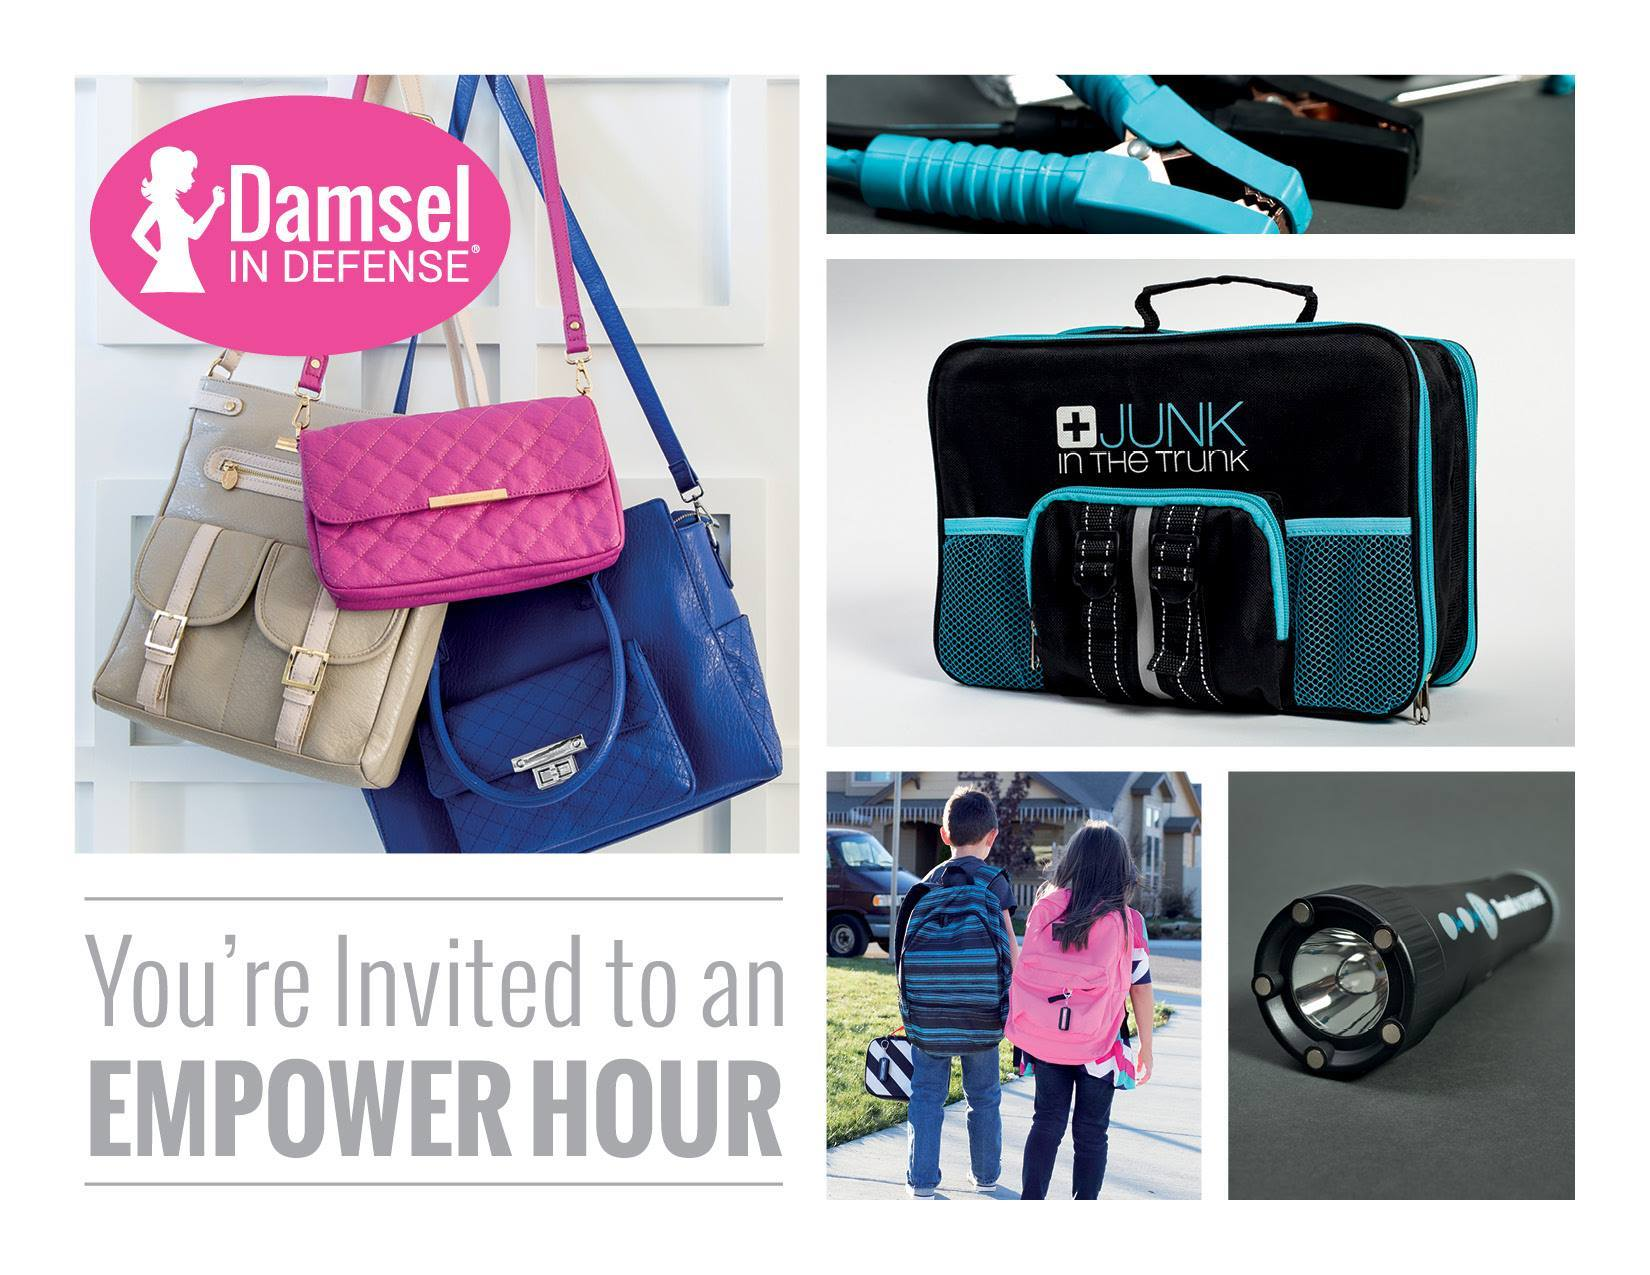 Damsel in Distress products